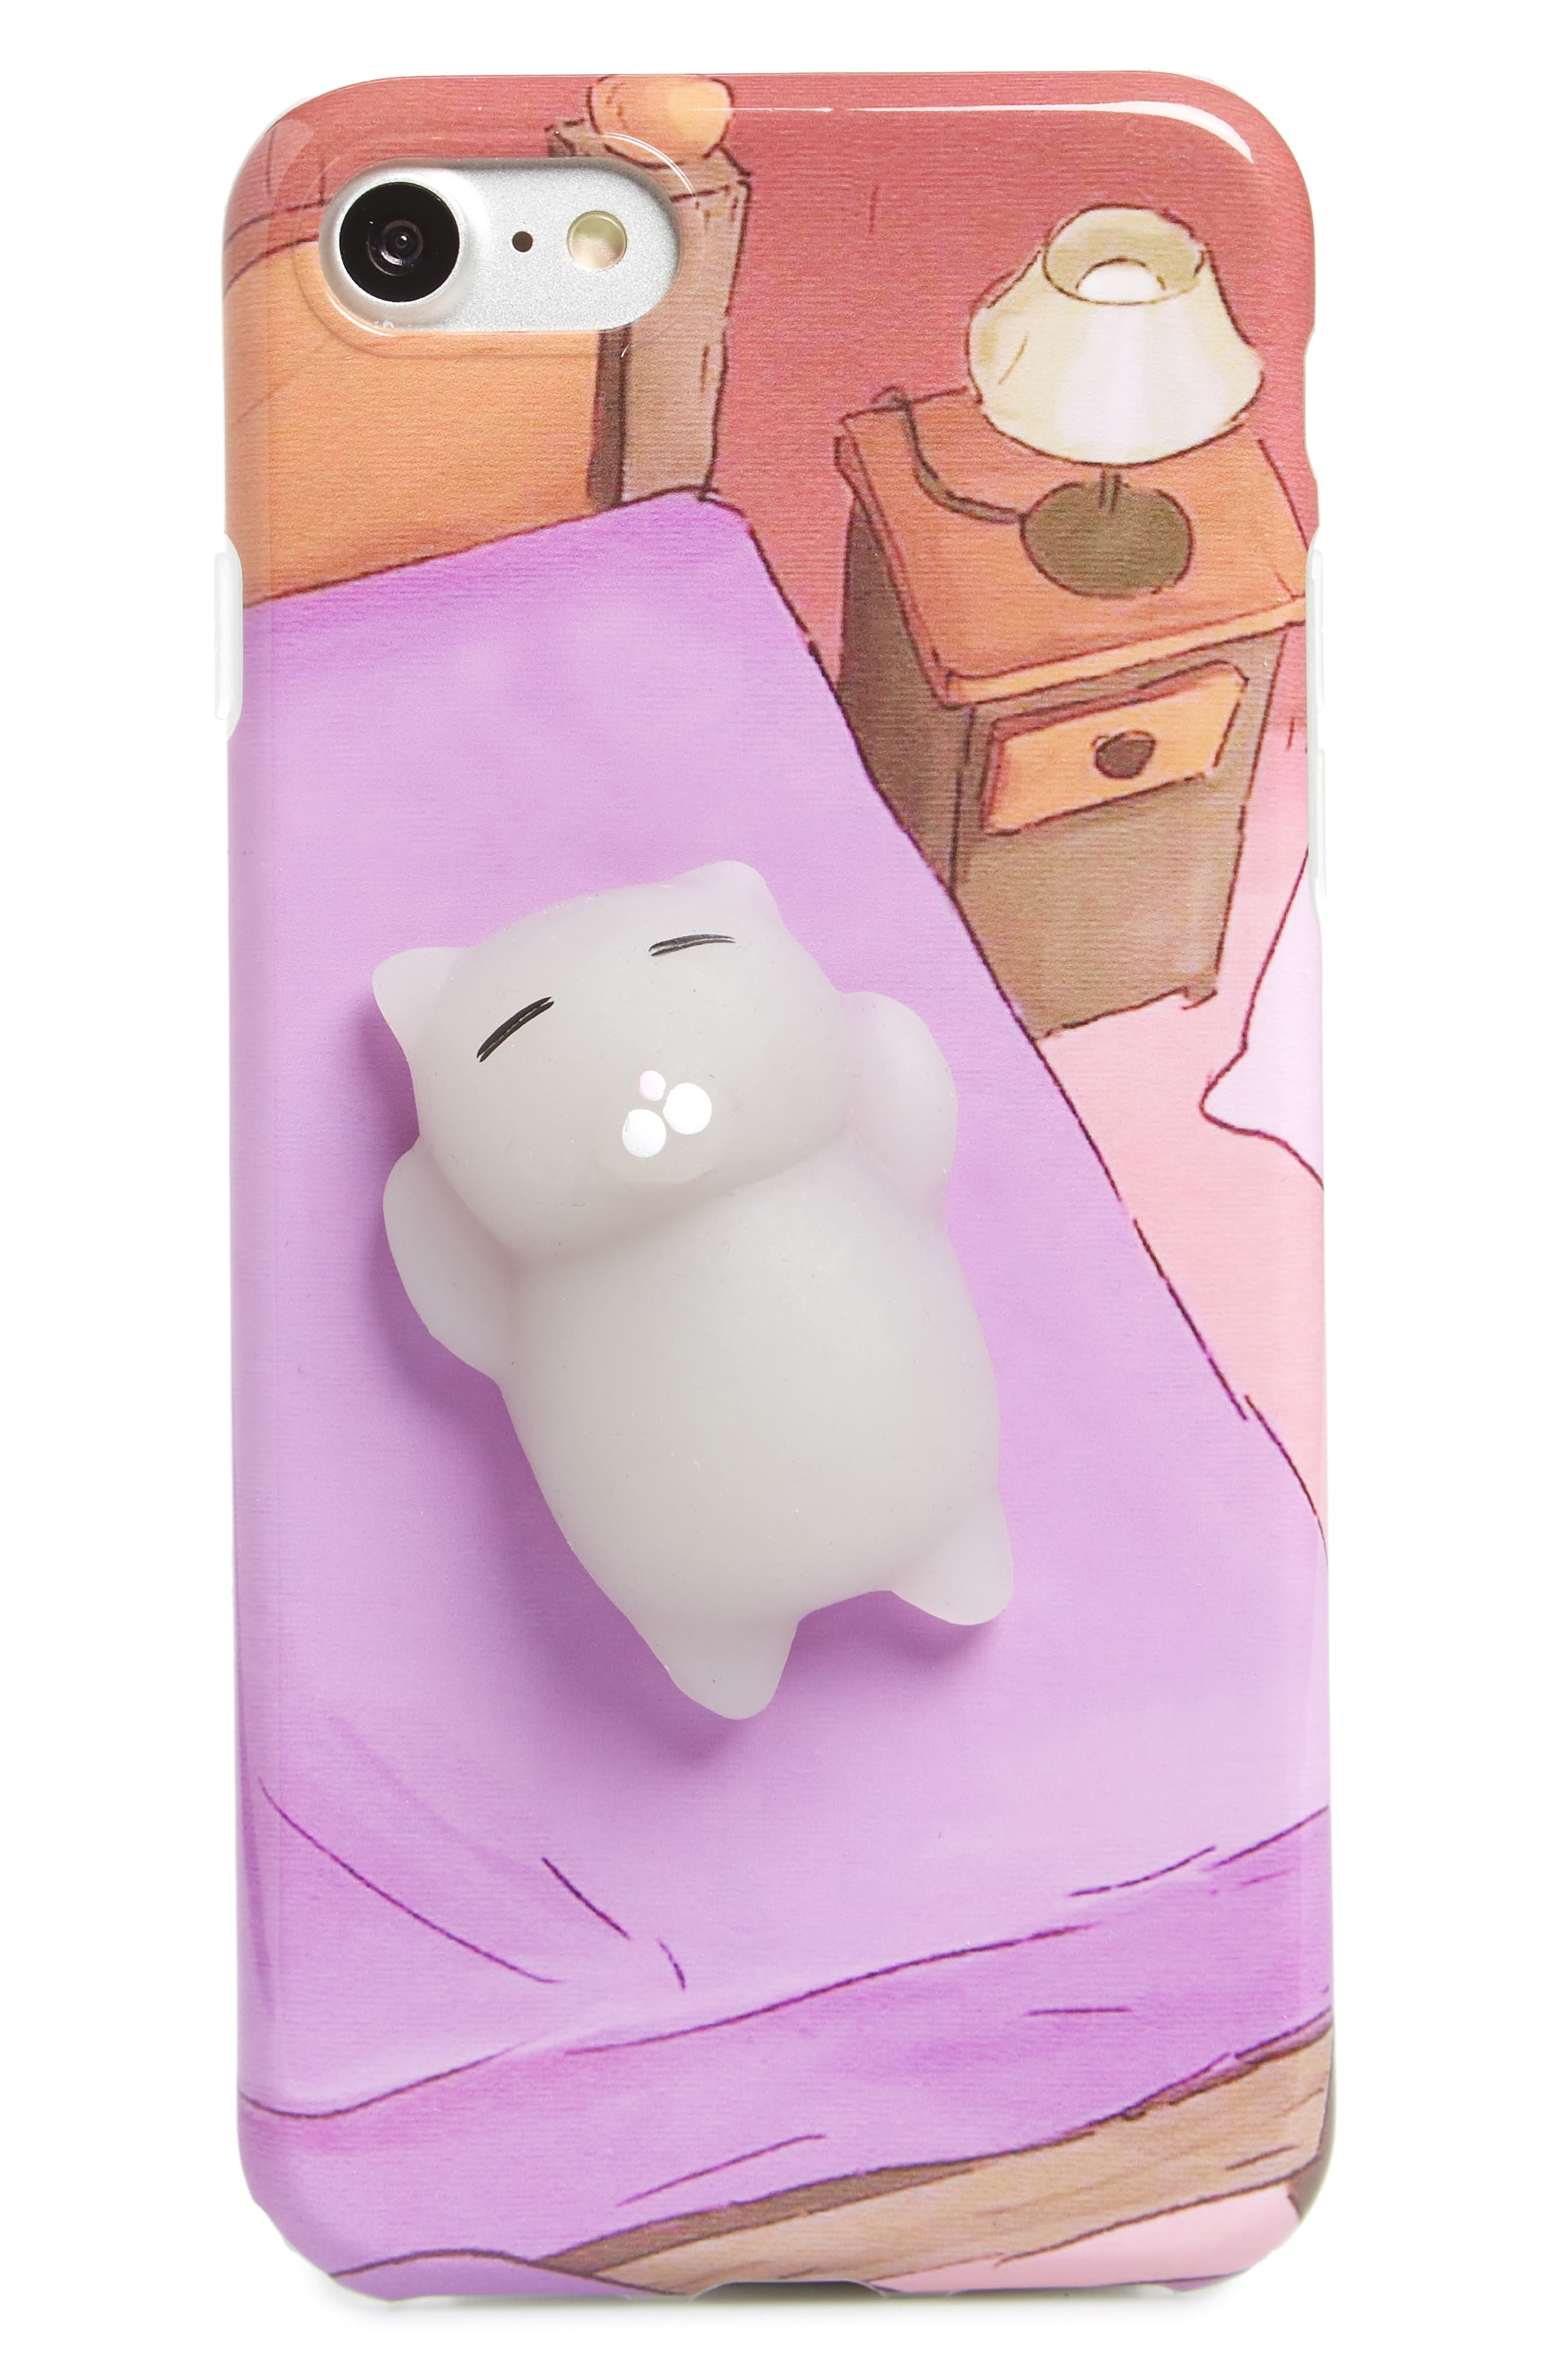 Squishy Cat in Bed iPhone 7/8 Case,                             Main thumbnail 1, color,                             500